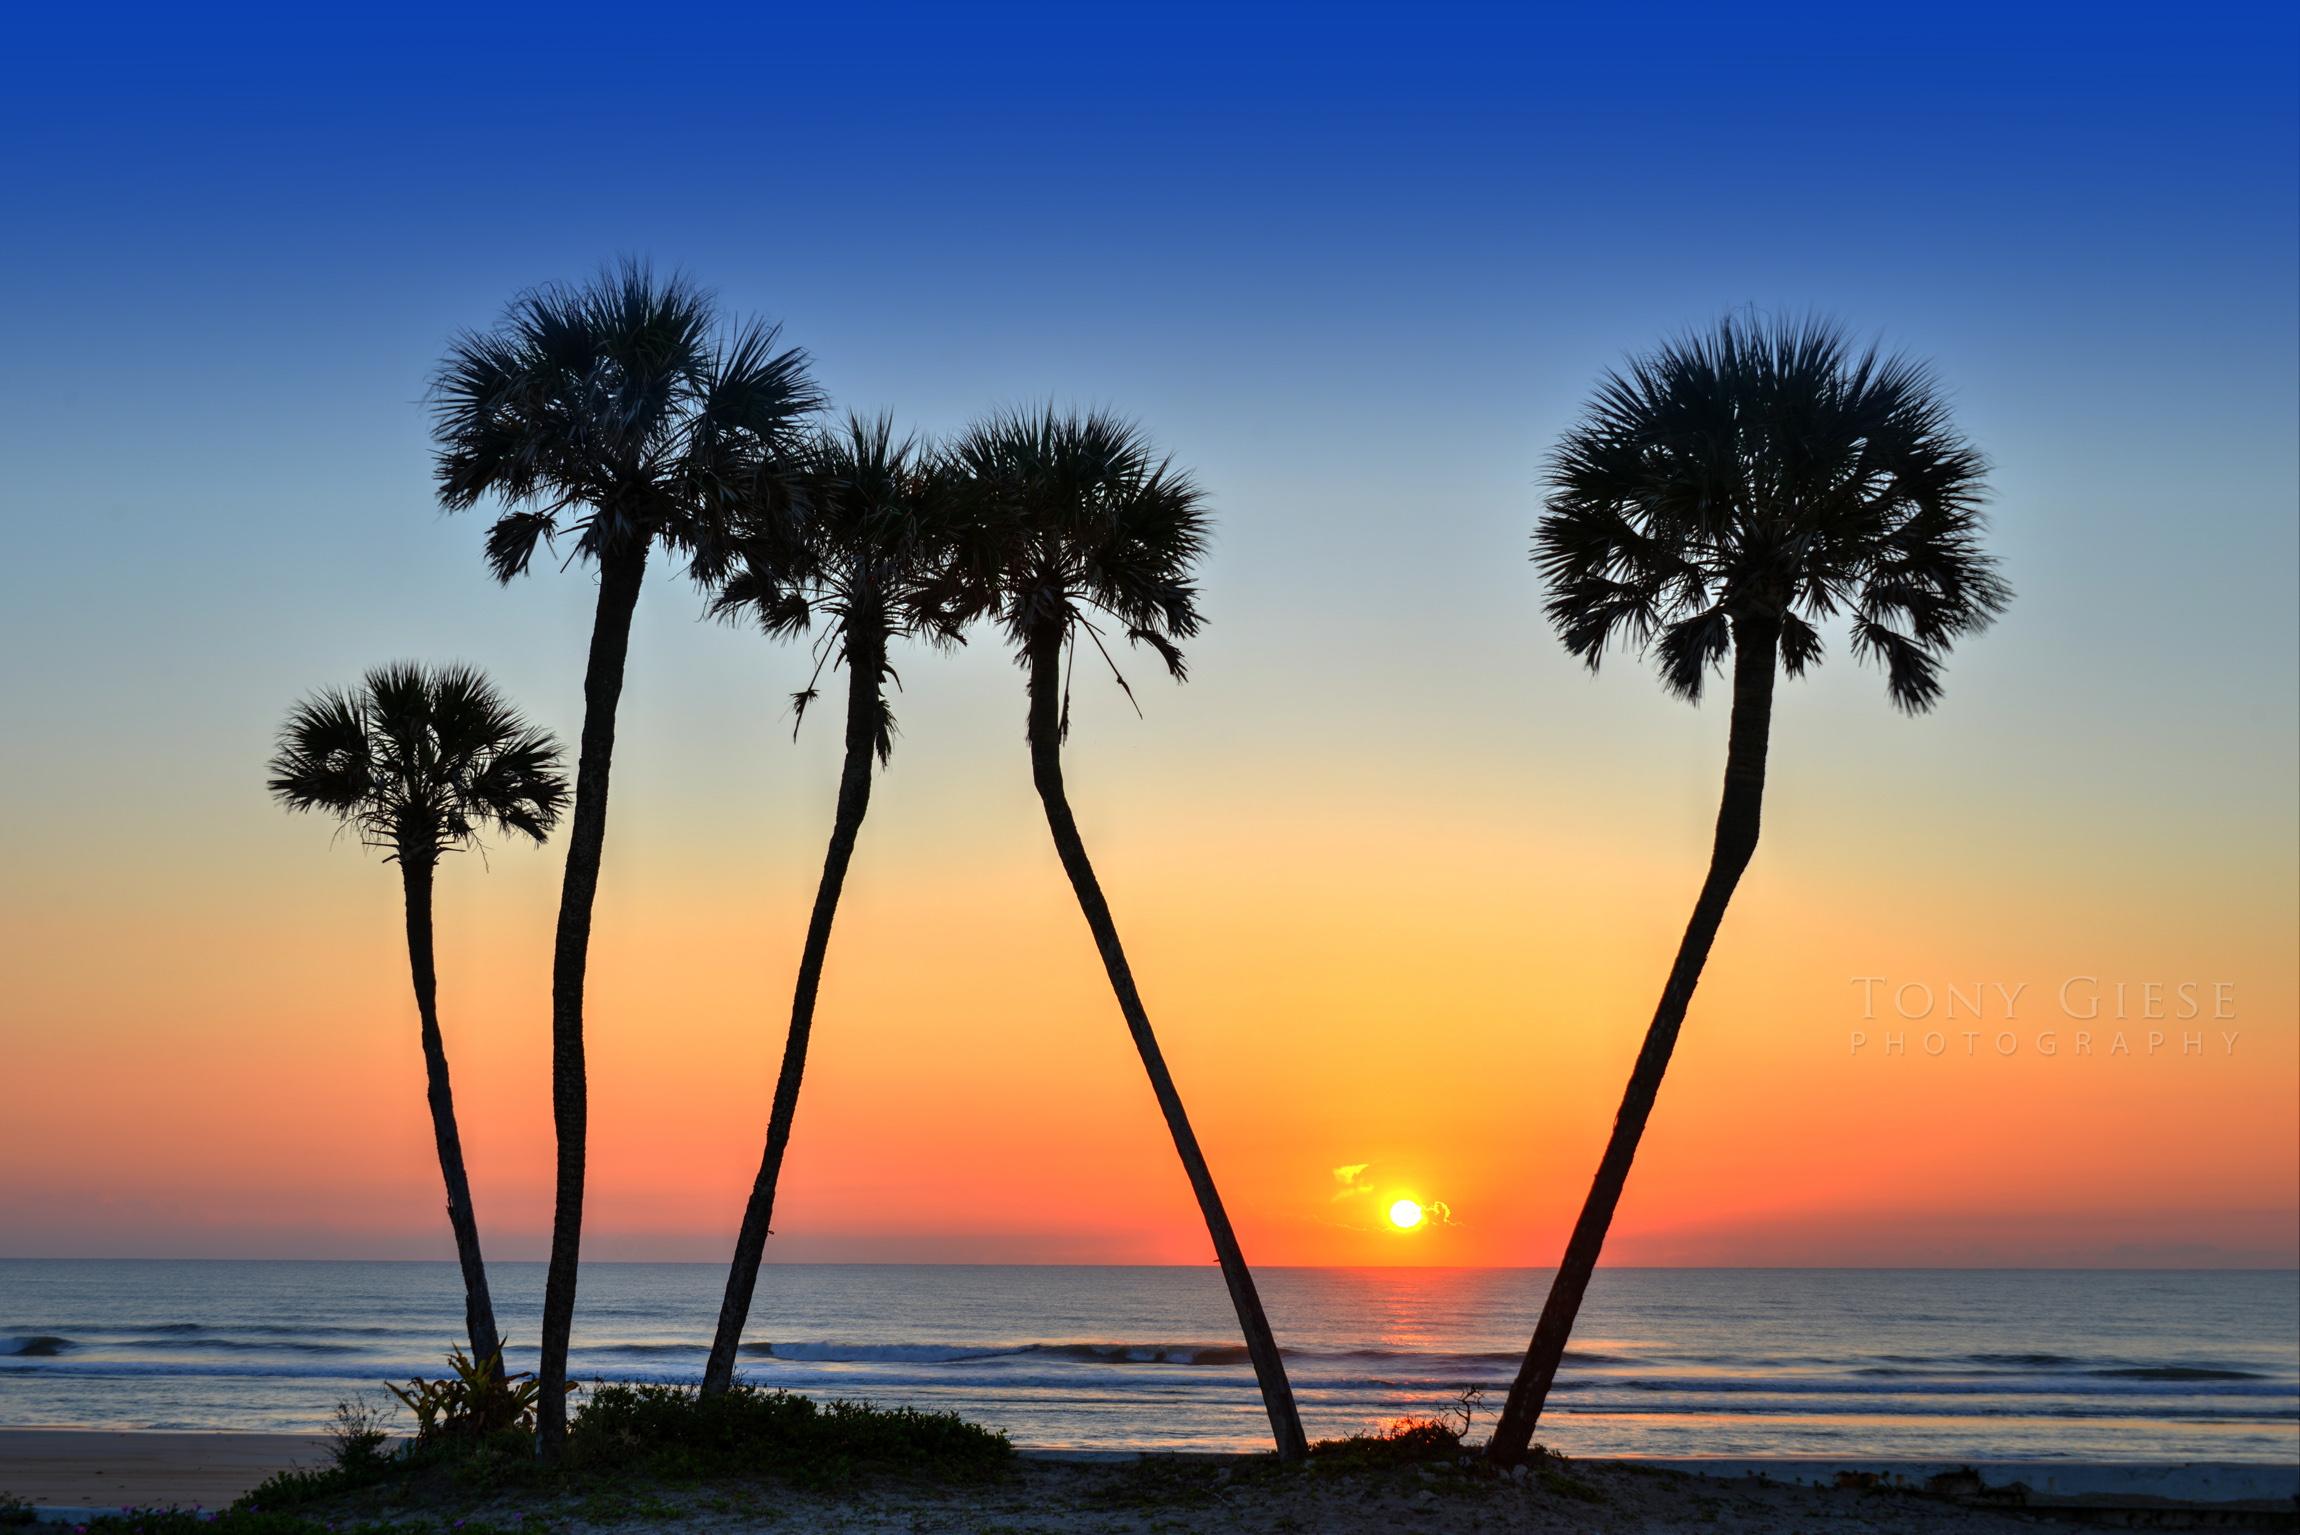 Daytona Beach Sunrise through palm trees on beach. Photography by Tony Giese Photography.